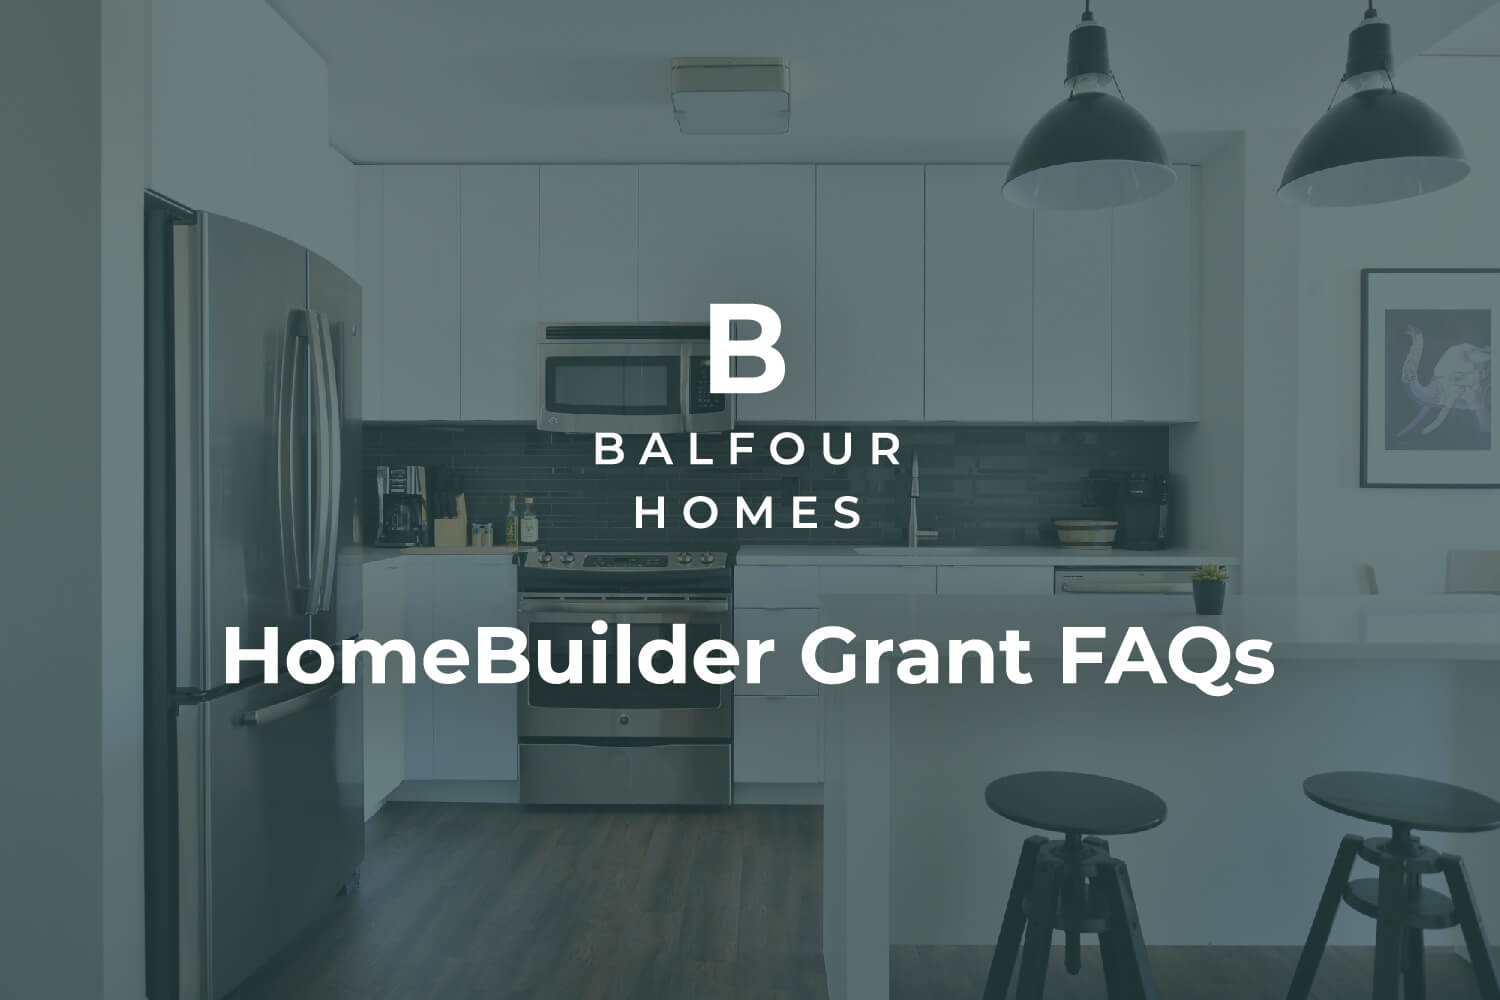 Balfour Homes - 5 Most Commonly Asked Questions About the HomeBuilder Grant